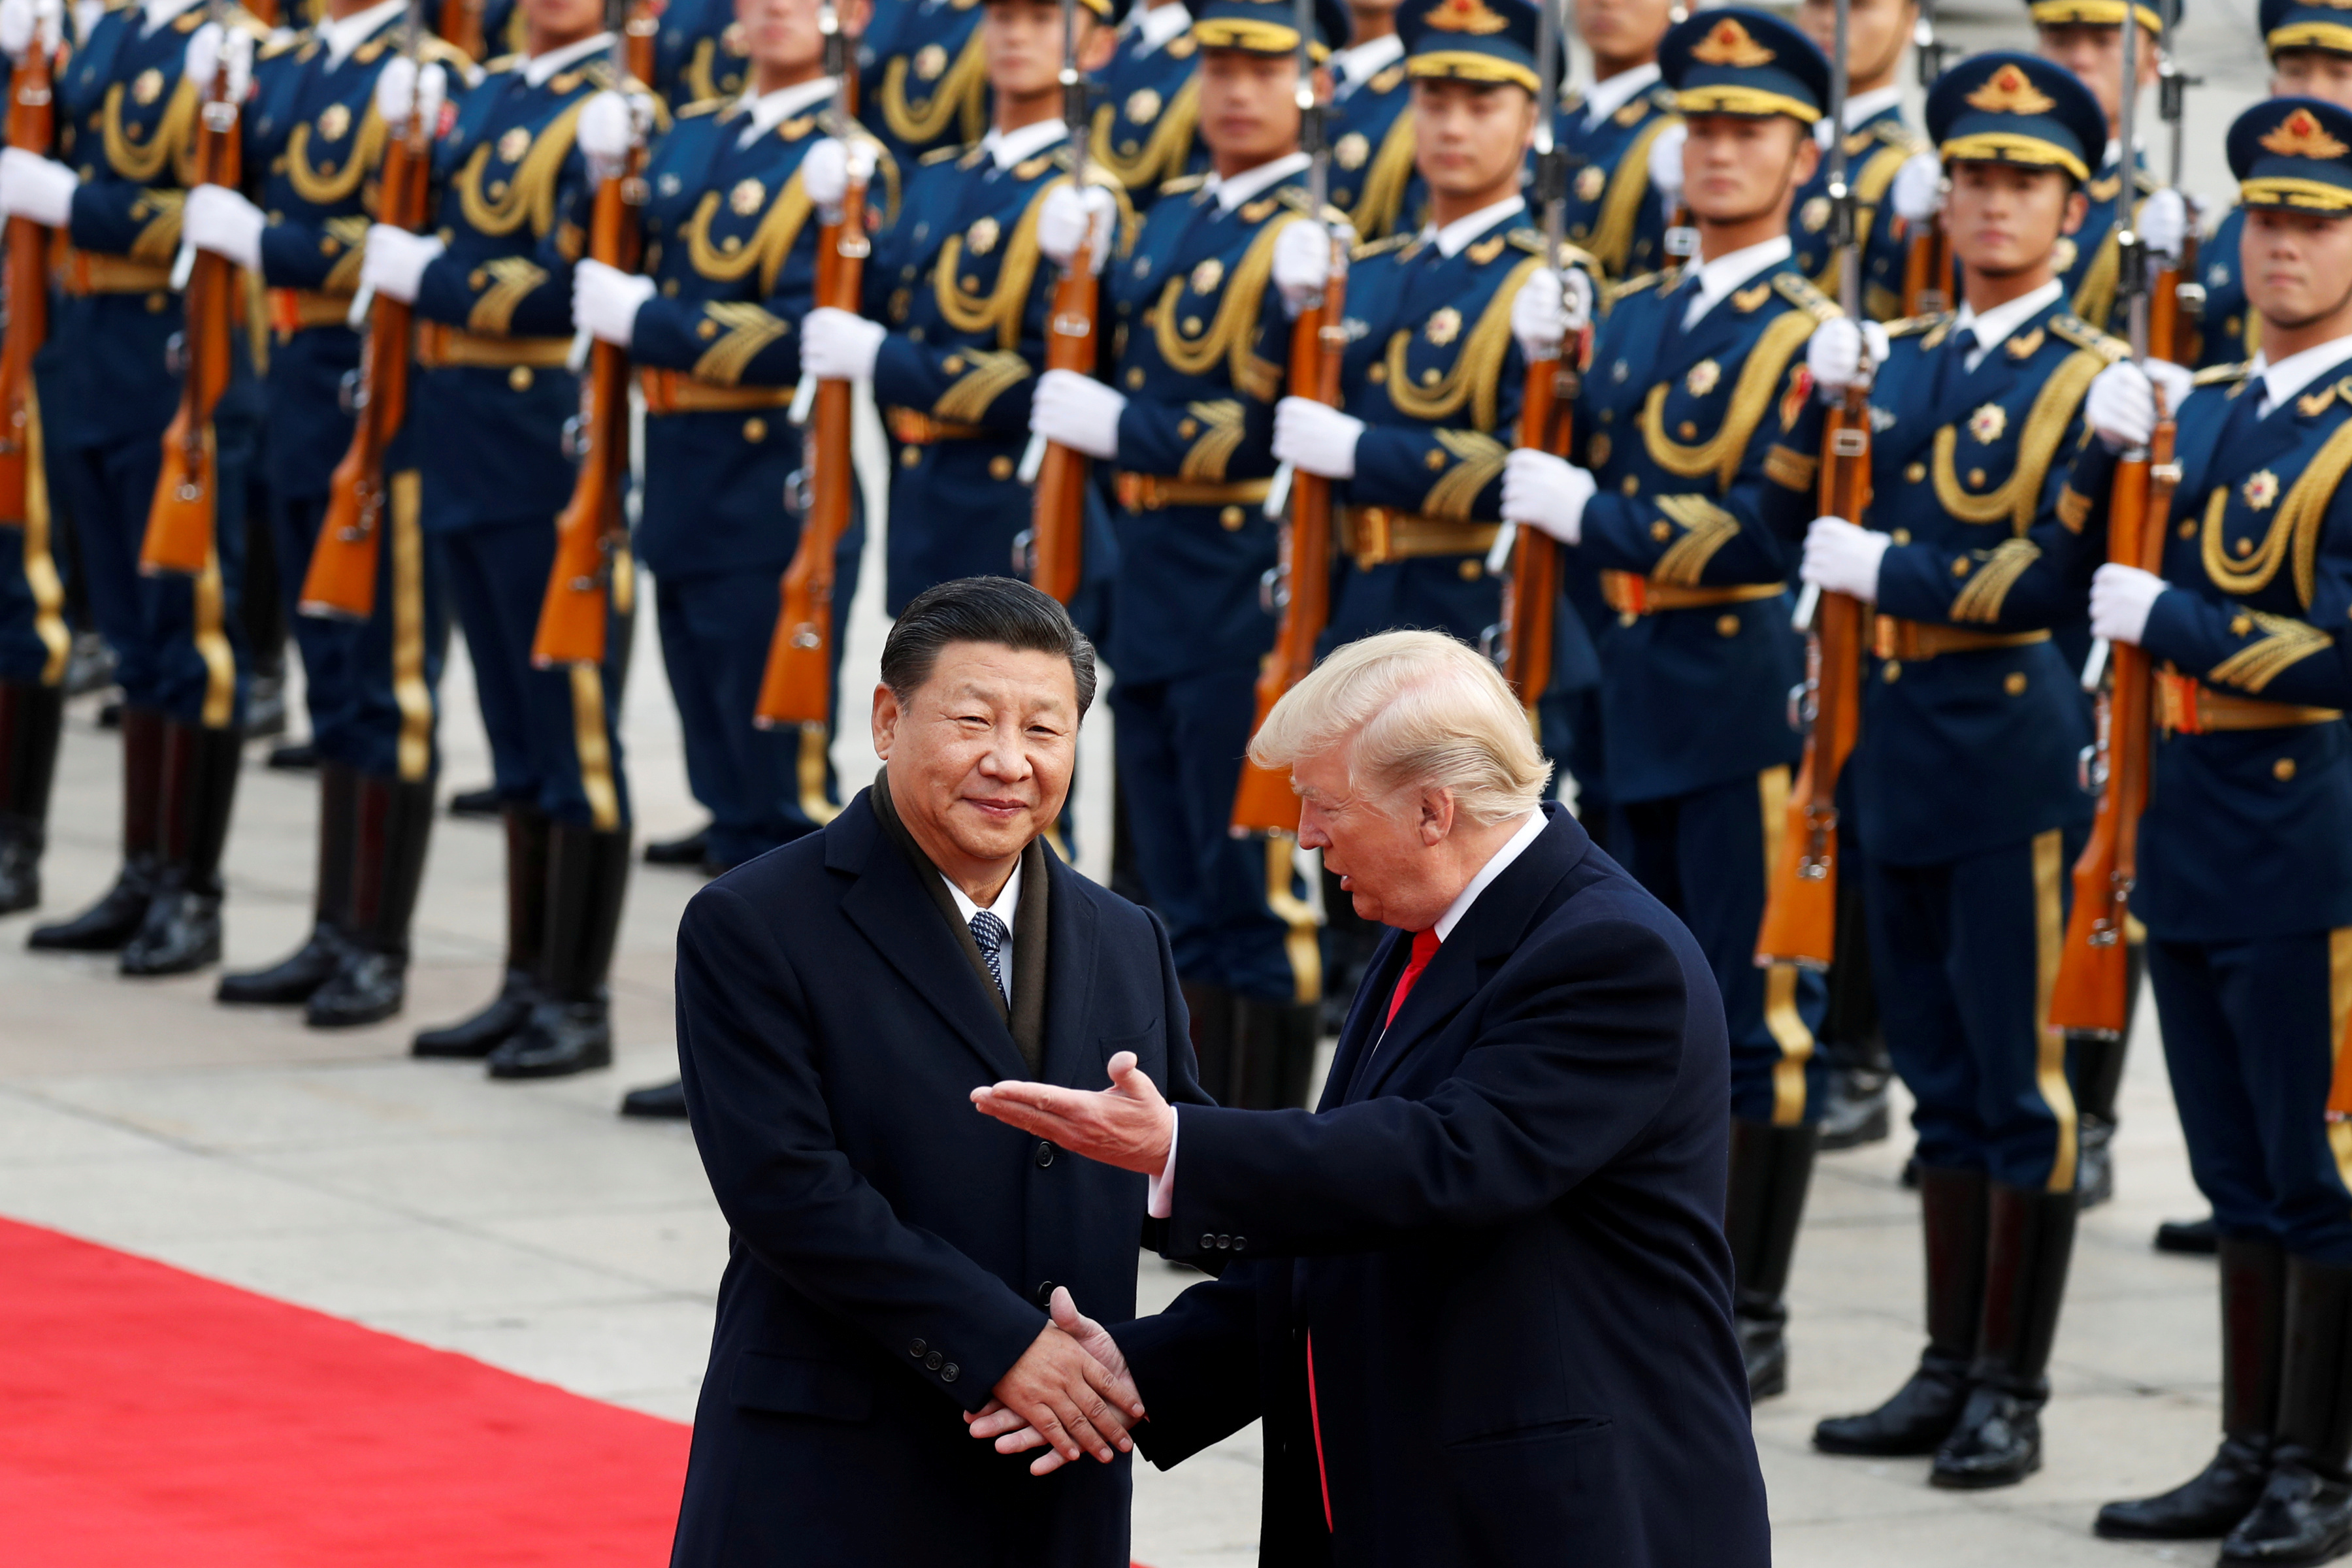 FILE PHOTO: U.S. President Donald Trump takes part in a welcoming ceremony with China's President Xi Jinping in Beijing, China, November 9, 2017. REUTERS/Damir Sagolj